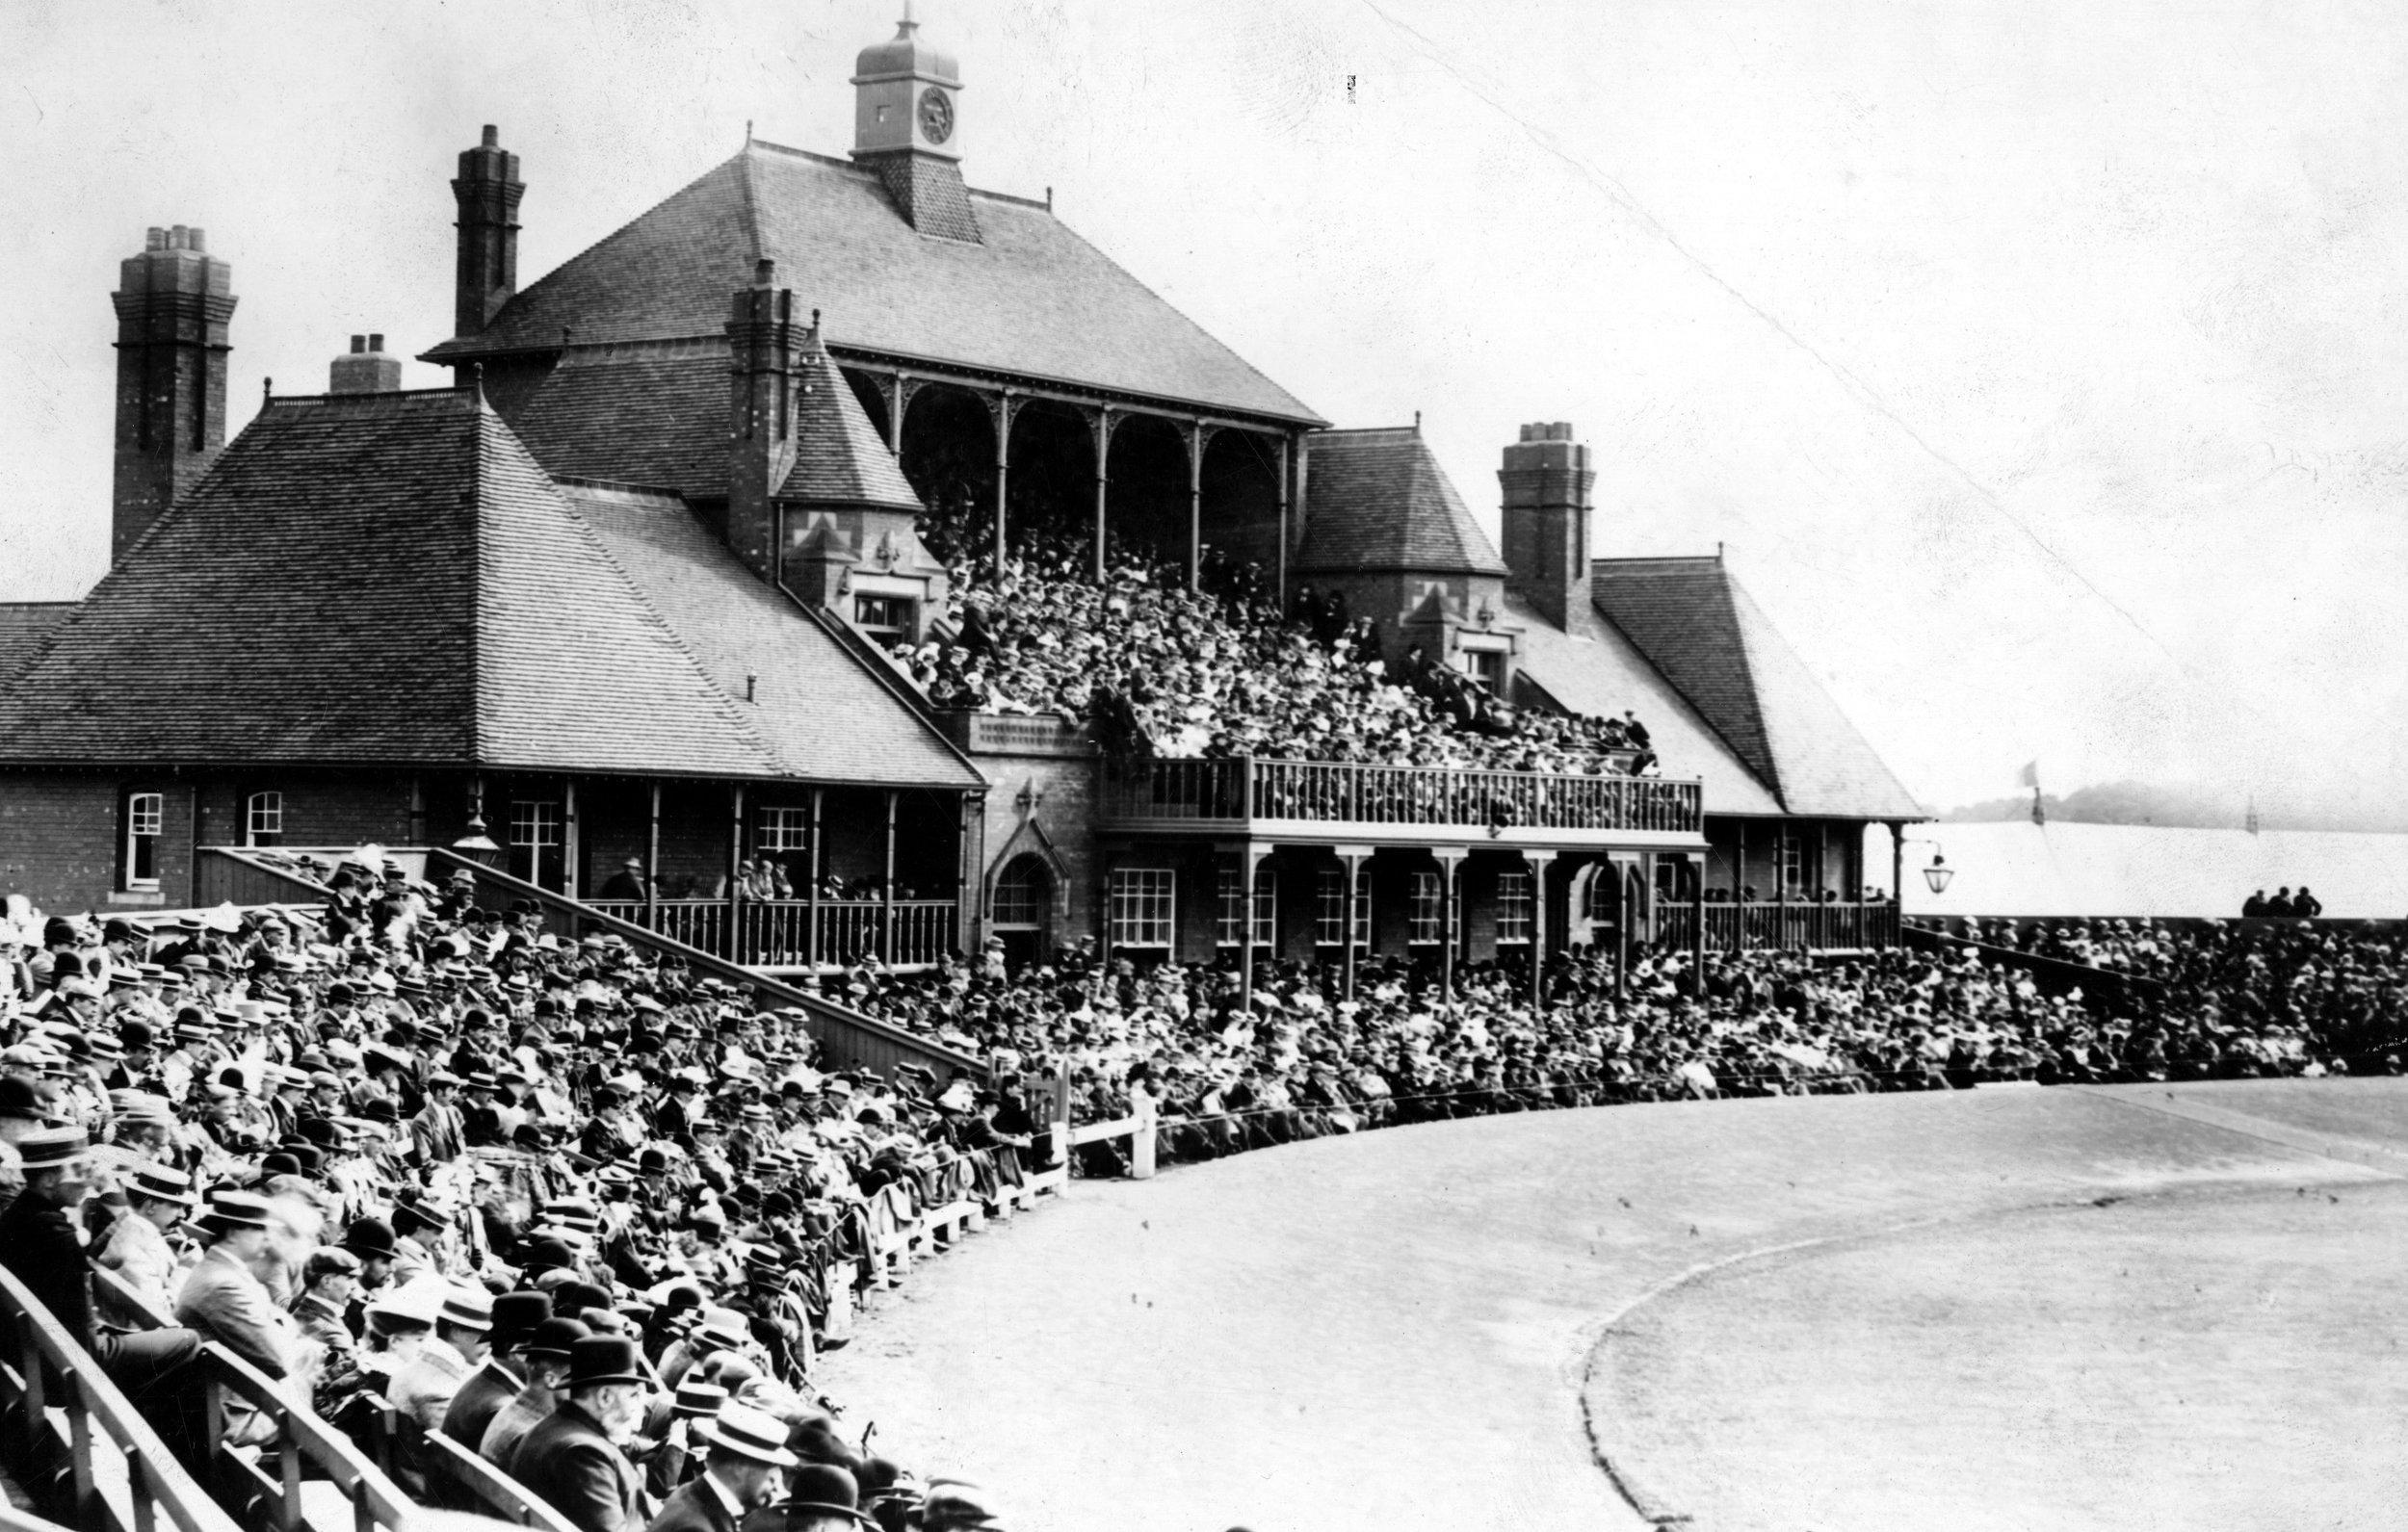 Yorkshire County Cricket Club Pavilion